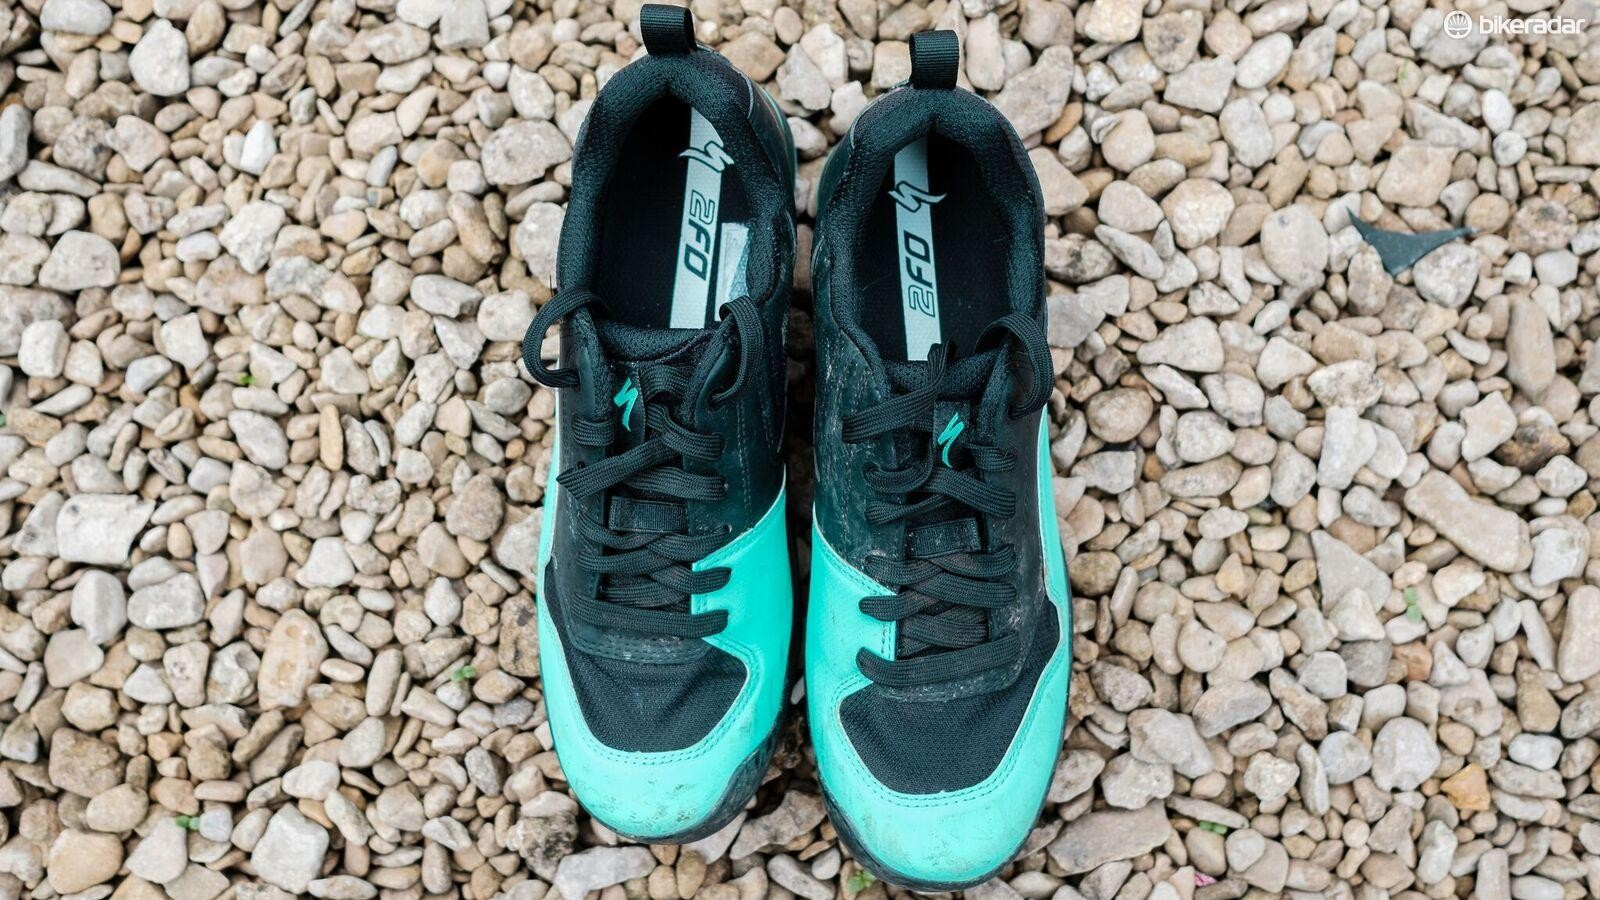 The 2FO ClipLIte Lace shoes from Specialized with a women's specific fit